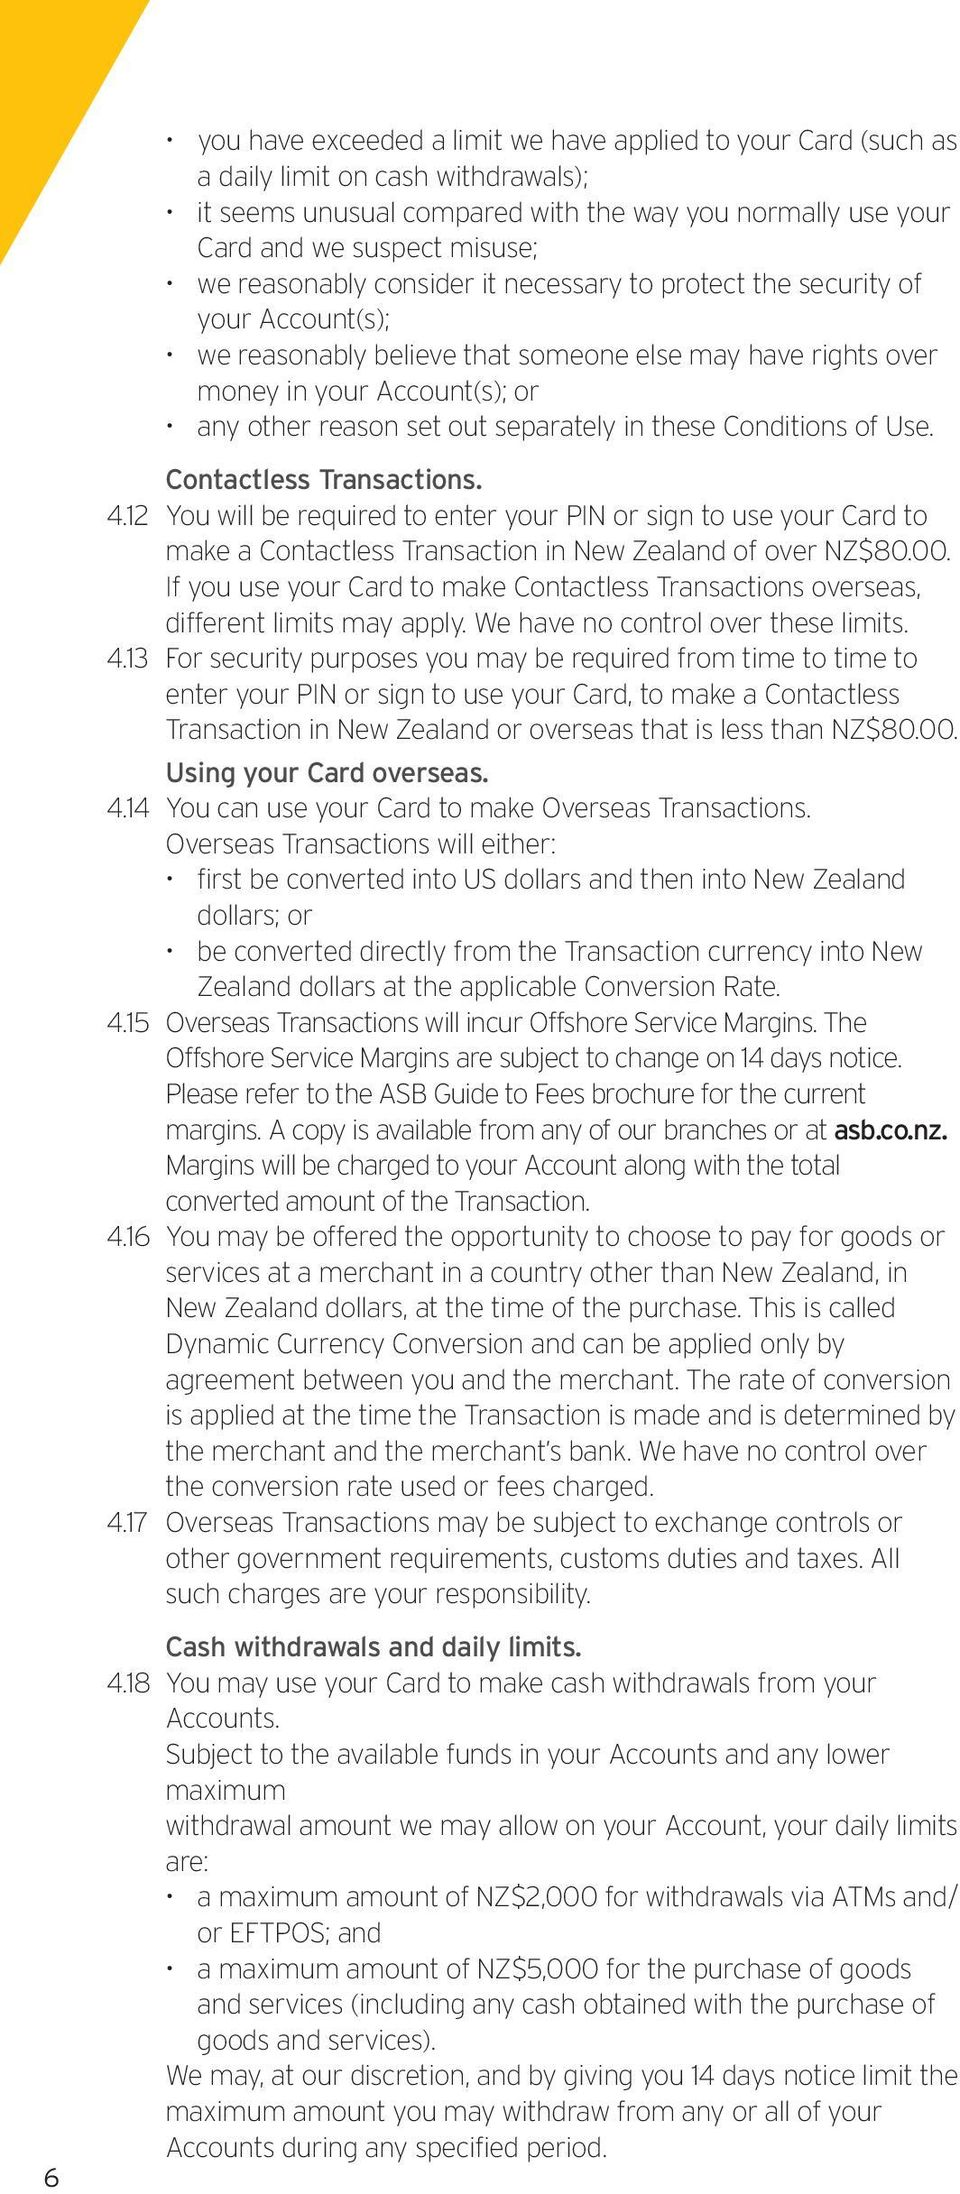 separately in these Conditions of Use. Contactless Transactions. 4.12 You will be required to enter your PIN or sign to use your Card to make a Contactless Transaction in New Zealand of over NZ$80.00.